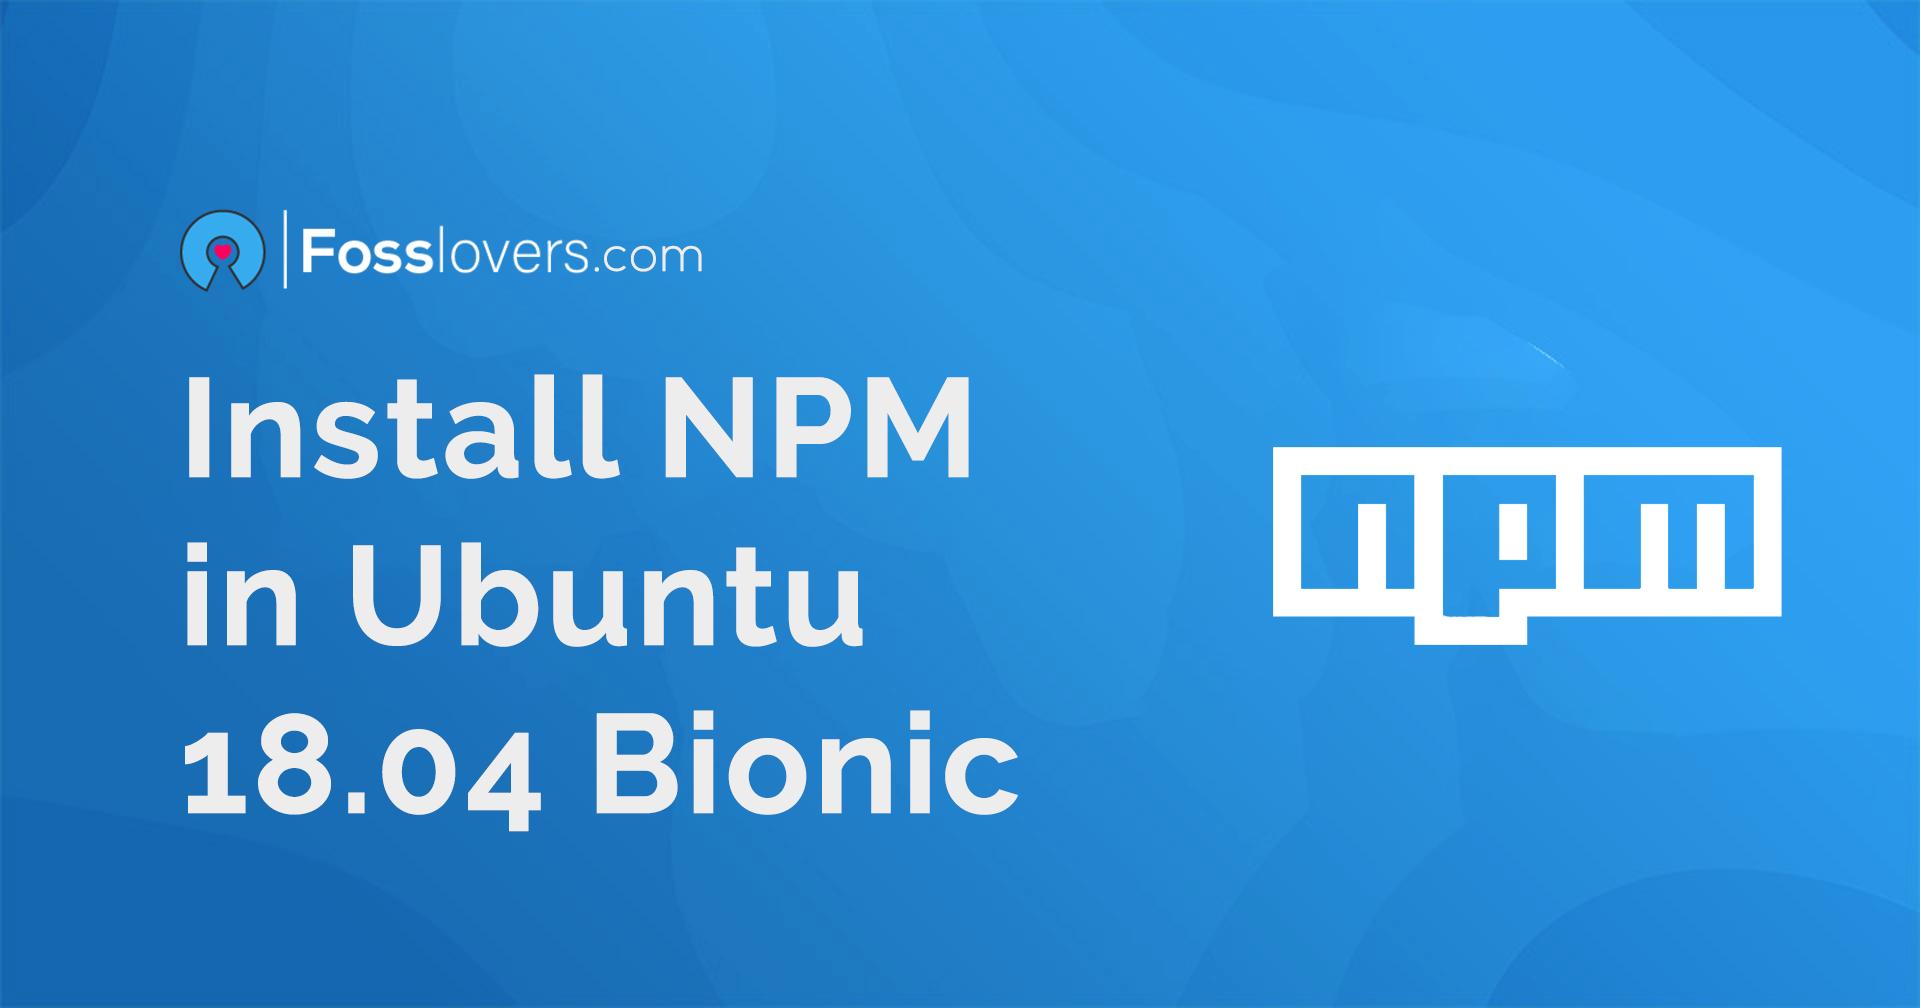 How to Install NPM in Ubuntu 18.04 Bionic